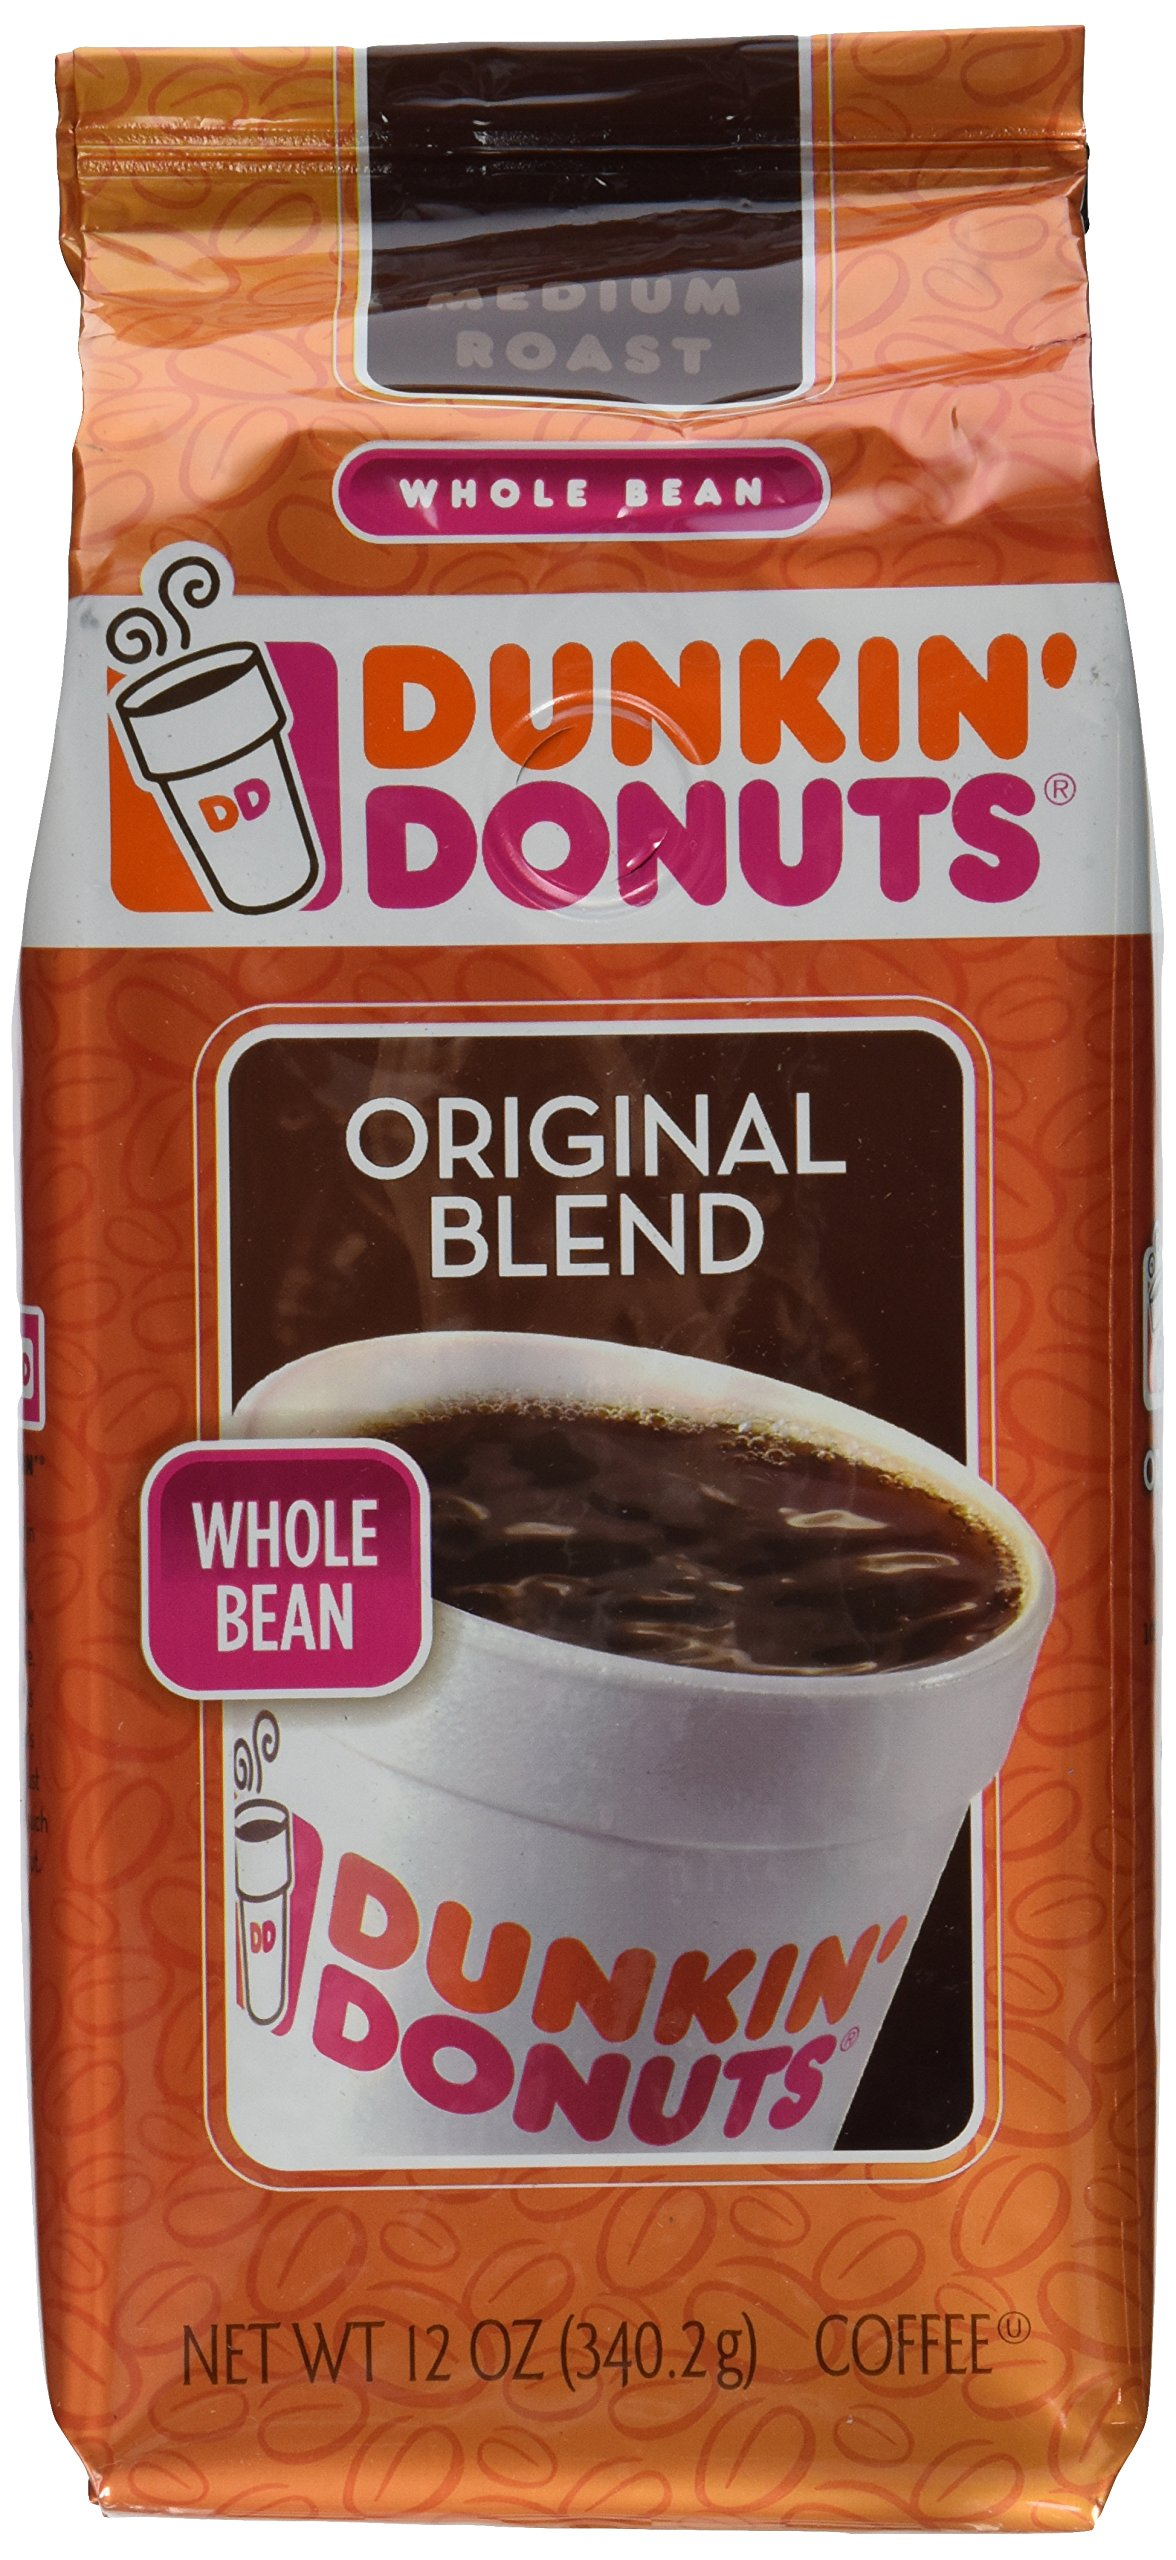 Dunkin' Donuts Original Blend Medium Roast Whole Bean Coffee 12 OZ (Pack of 12)